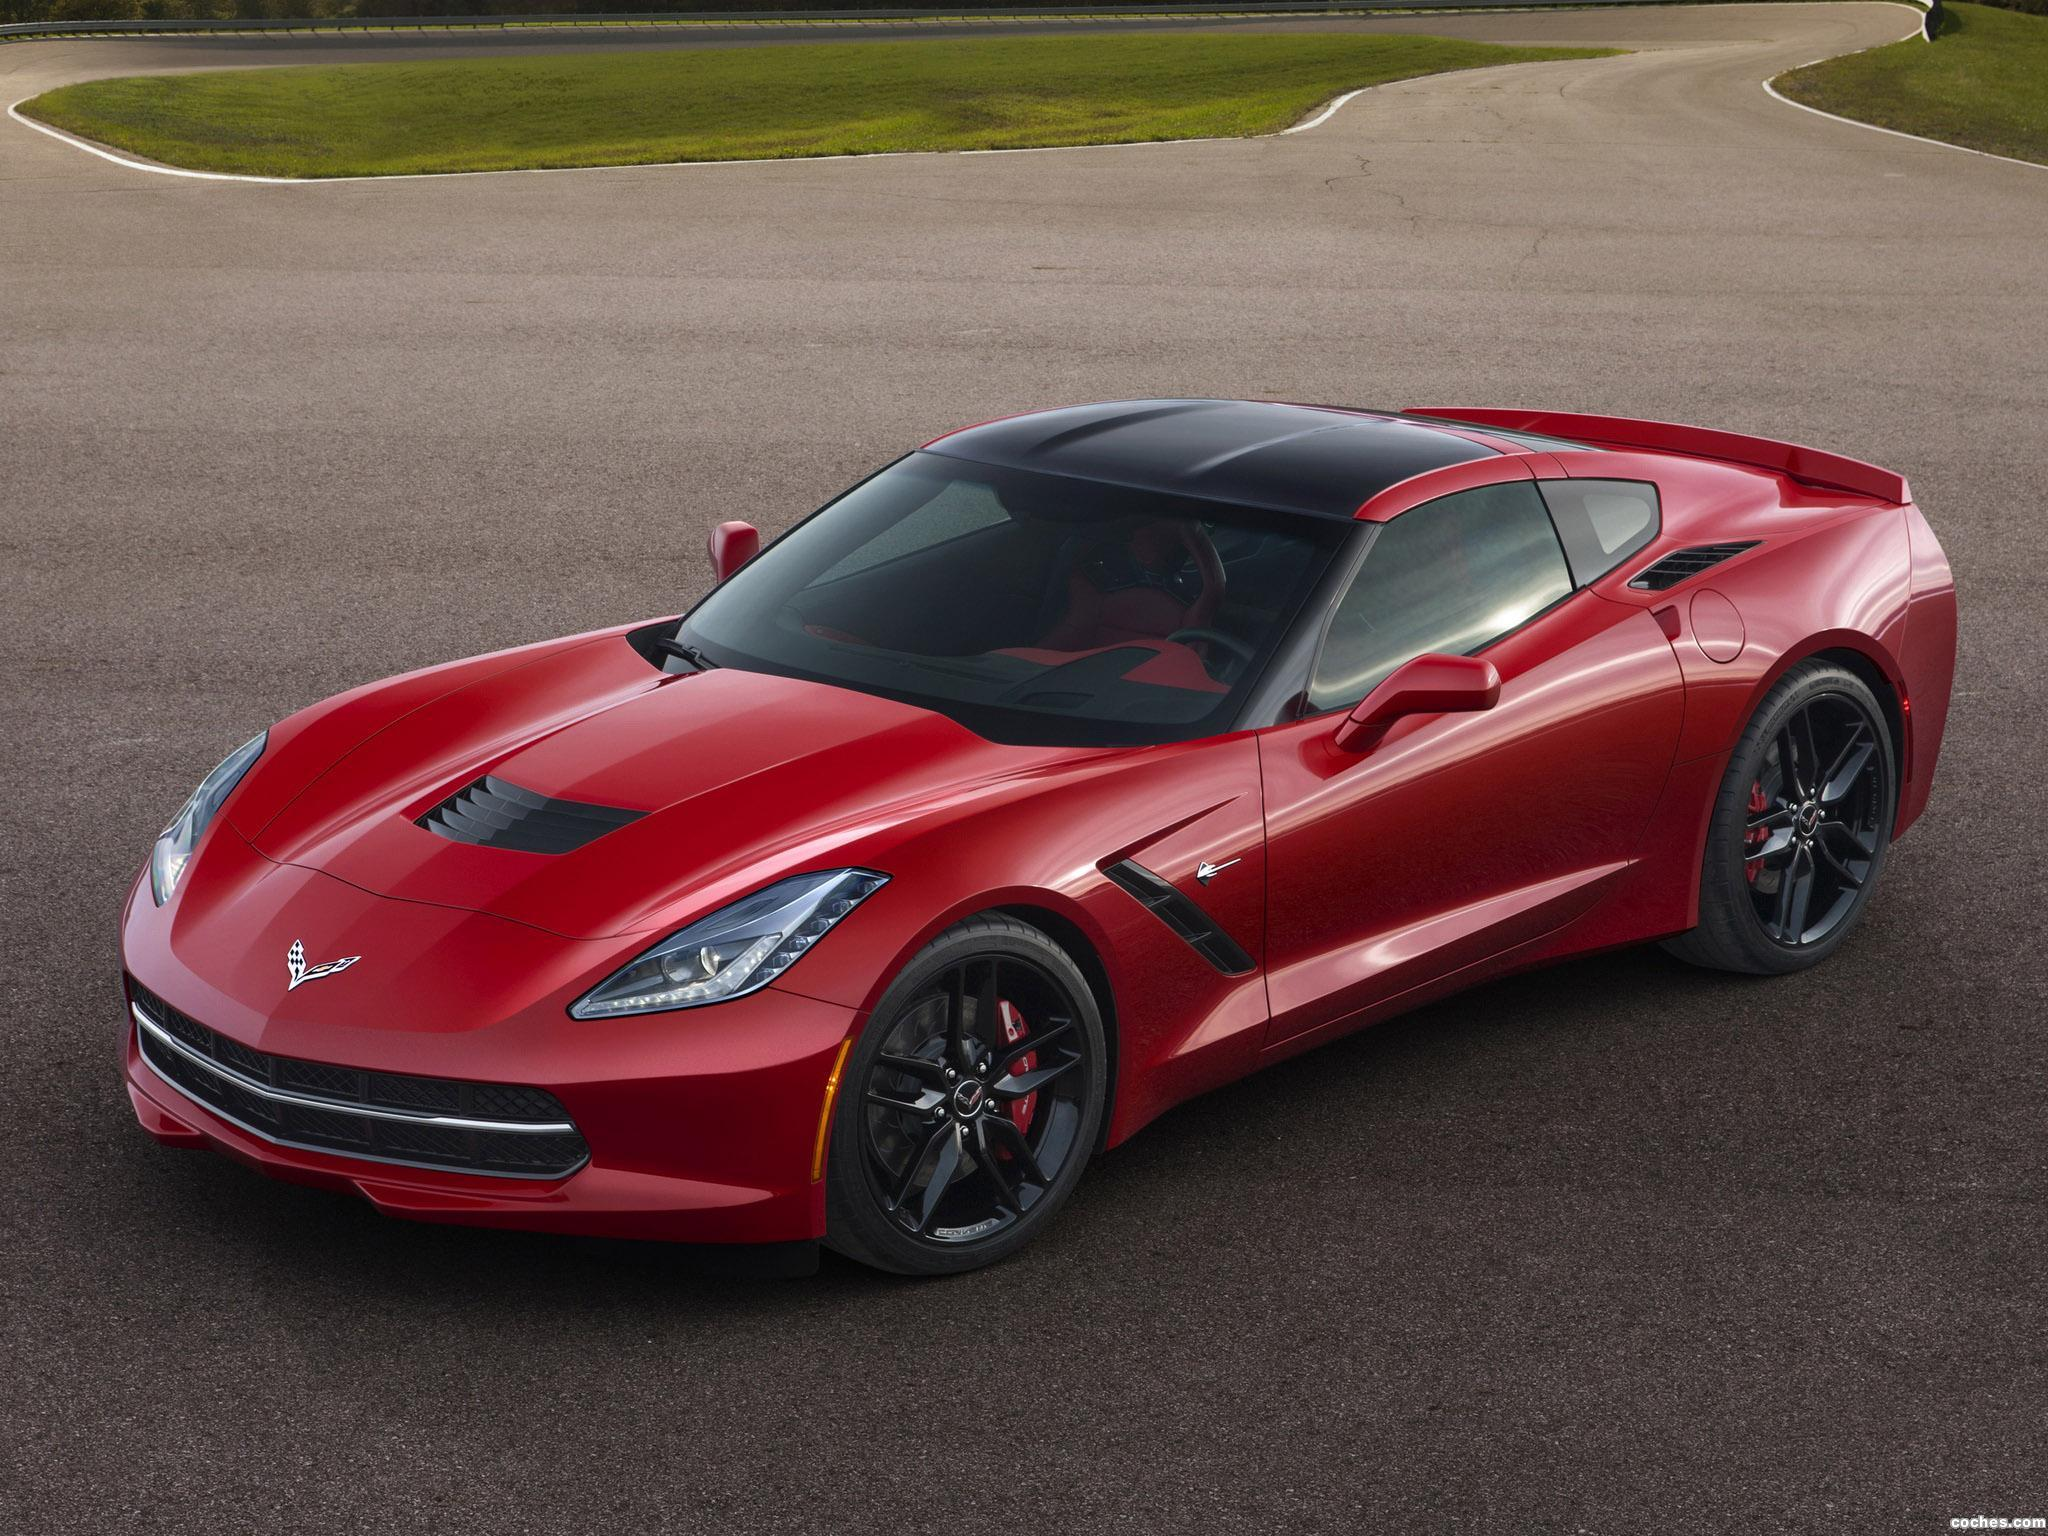 Foto 3 de Chevrolet Corvette Stingray C7 2014